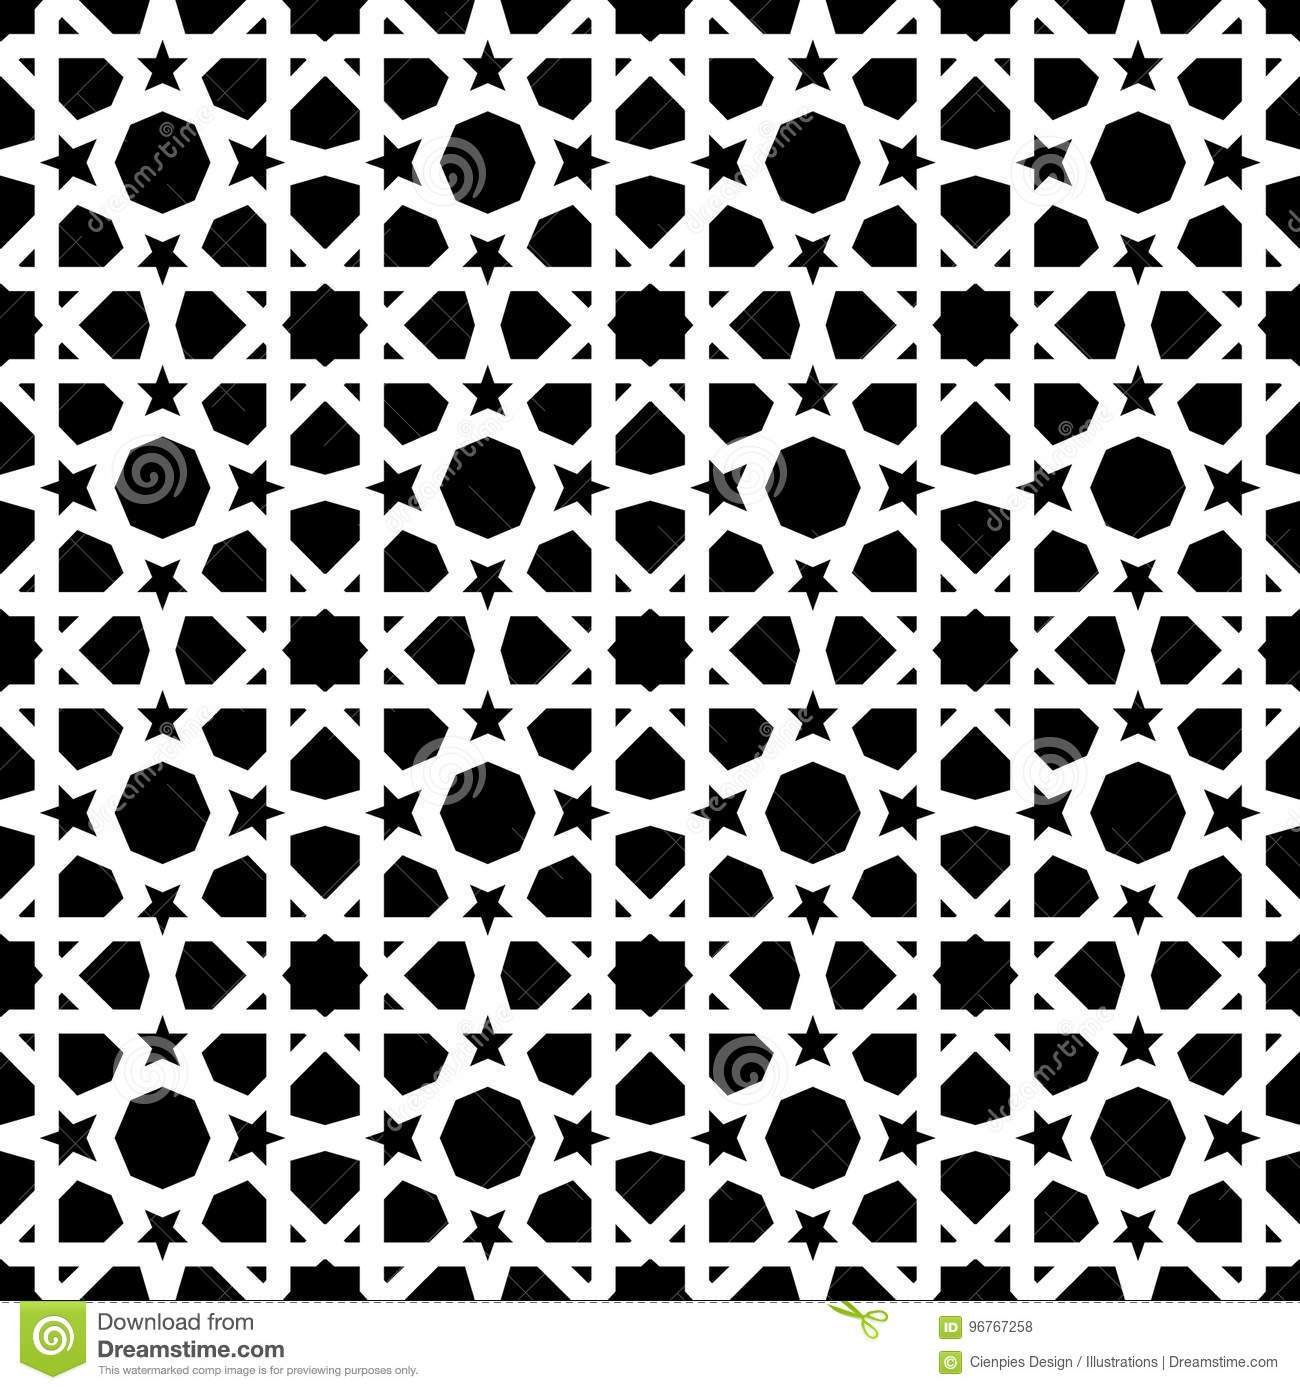 vintage mosaic tile background decoration art stock vectorvintage ceramic mosaic tile seamless pattern with abstract black and white geometric shape decoration entwined tiled pattern based on traditional oriental